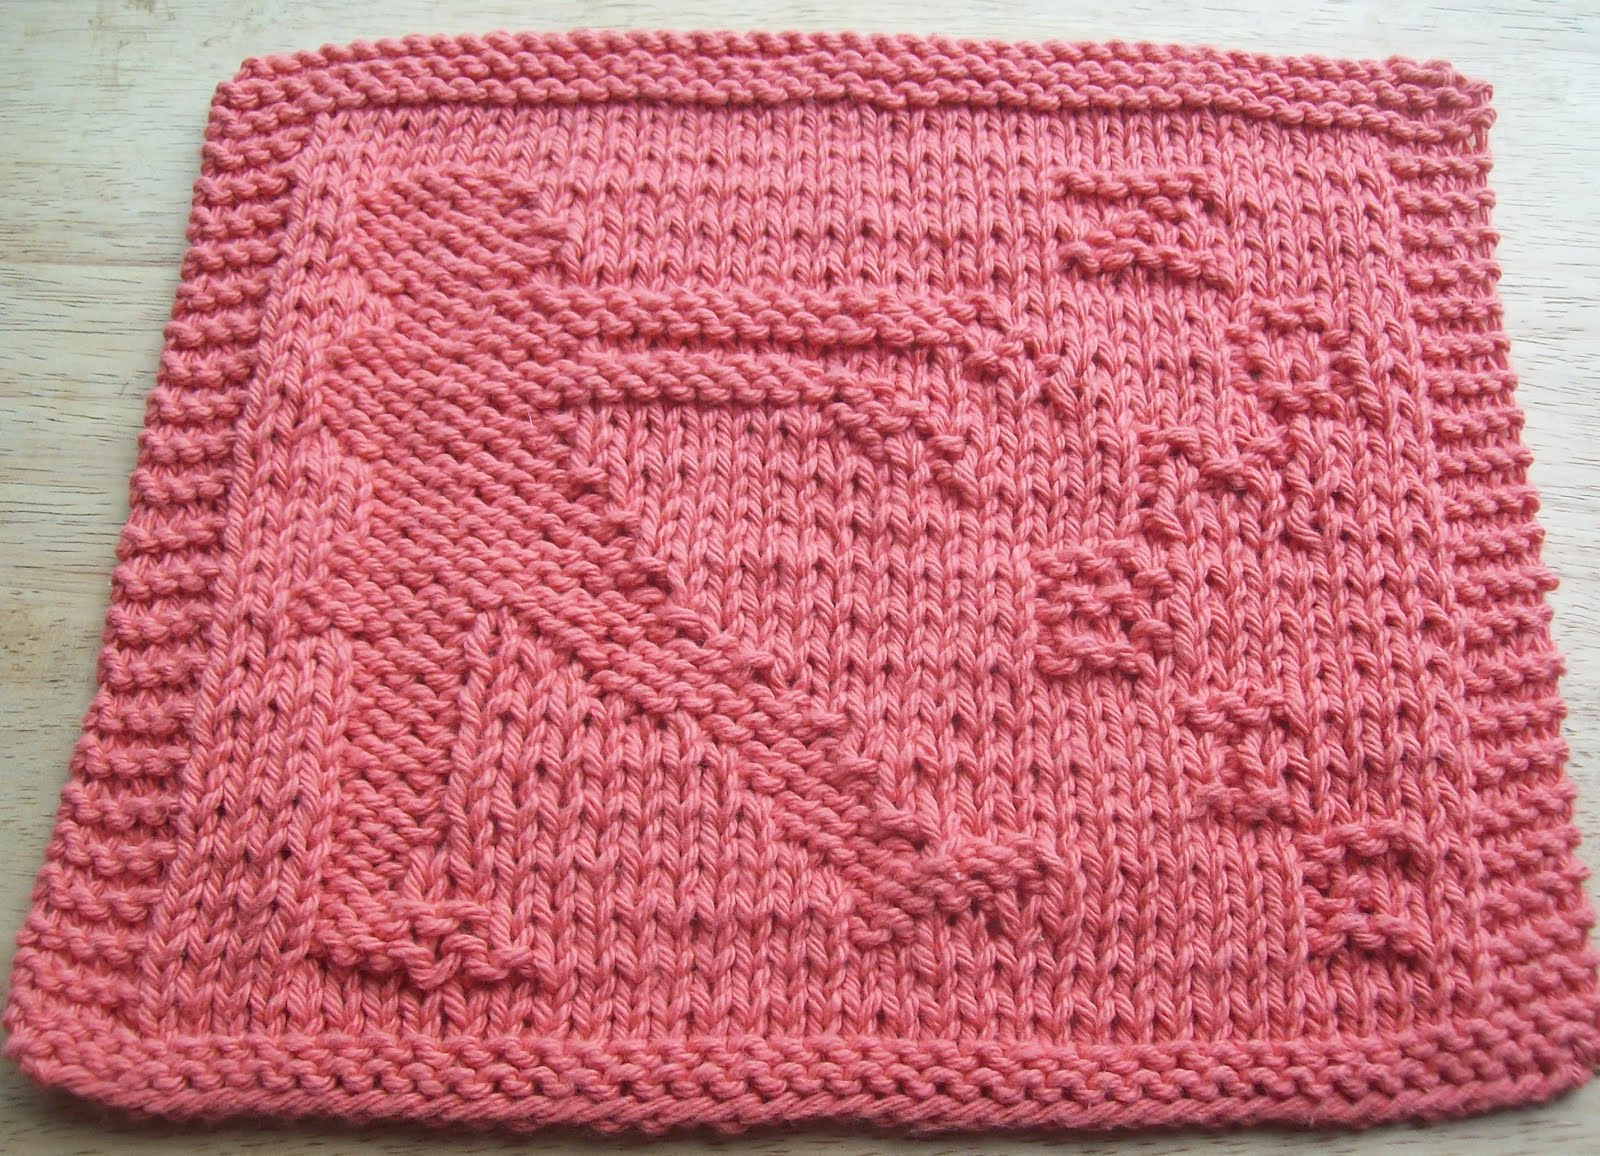 A pink knitted dishcloth incorporating a zombie into the design.